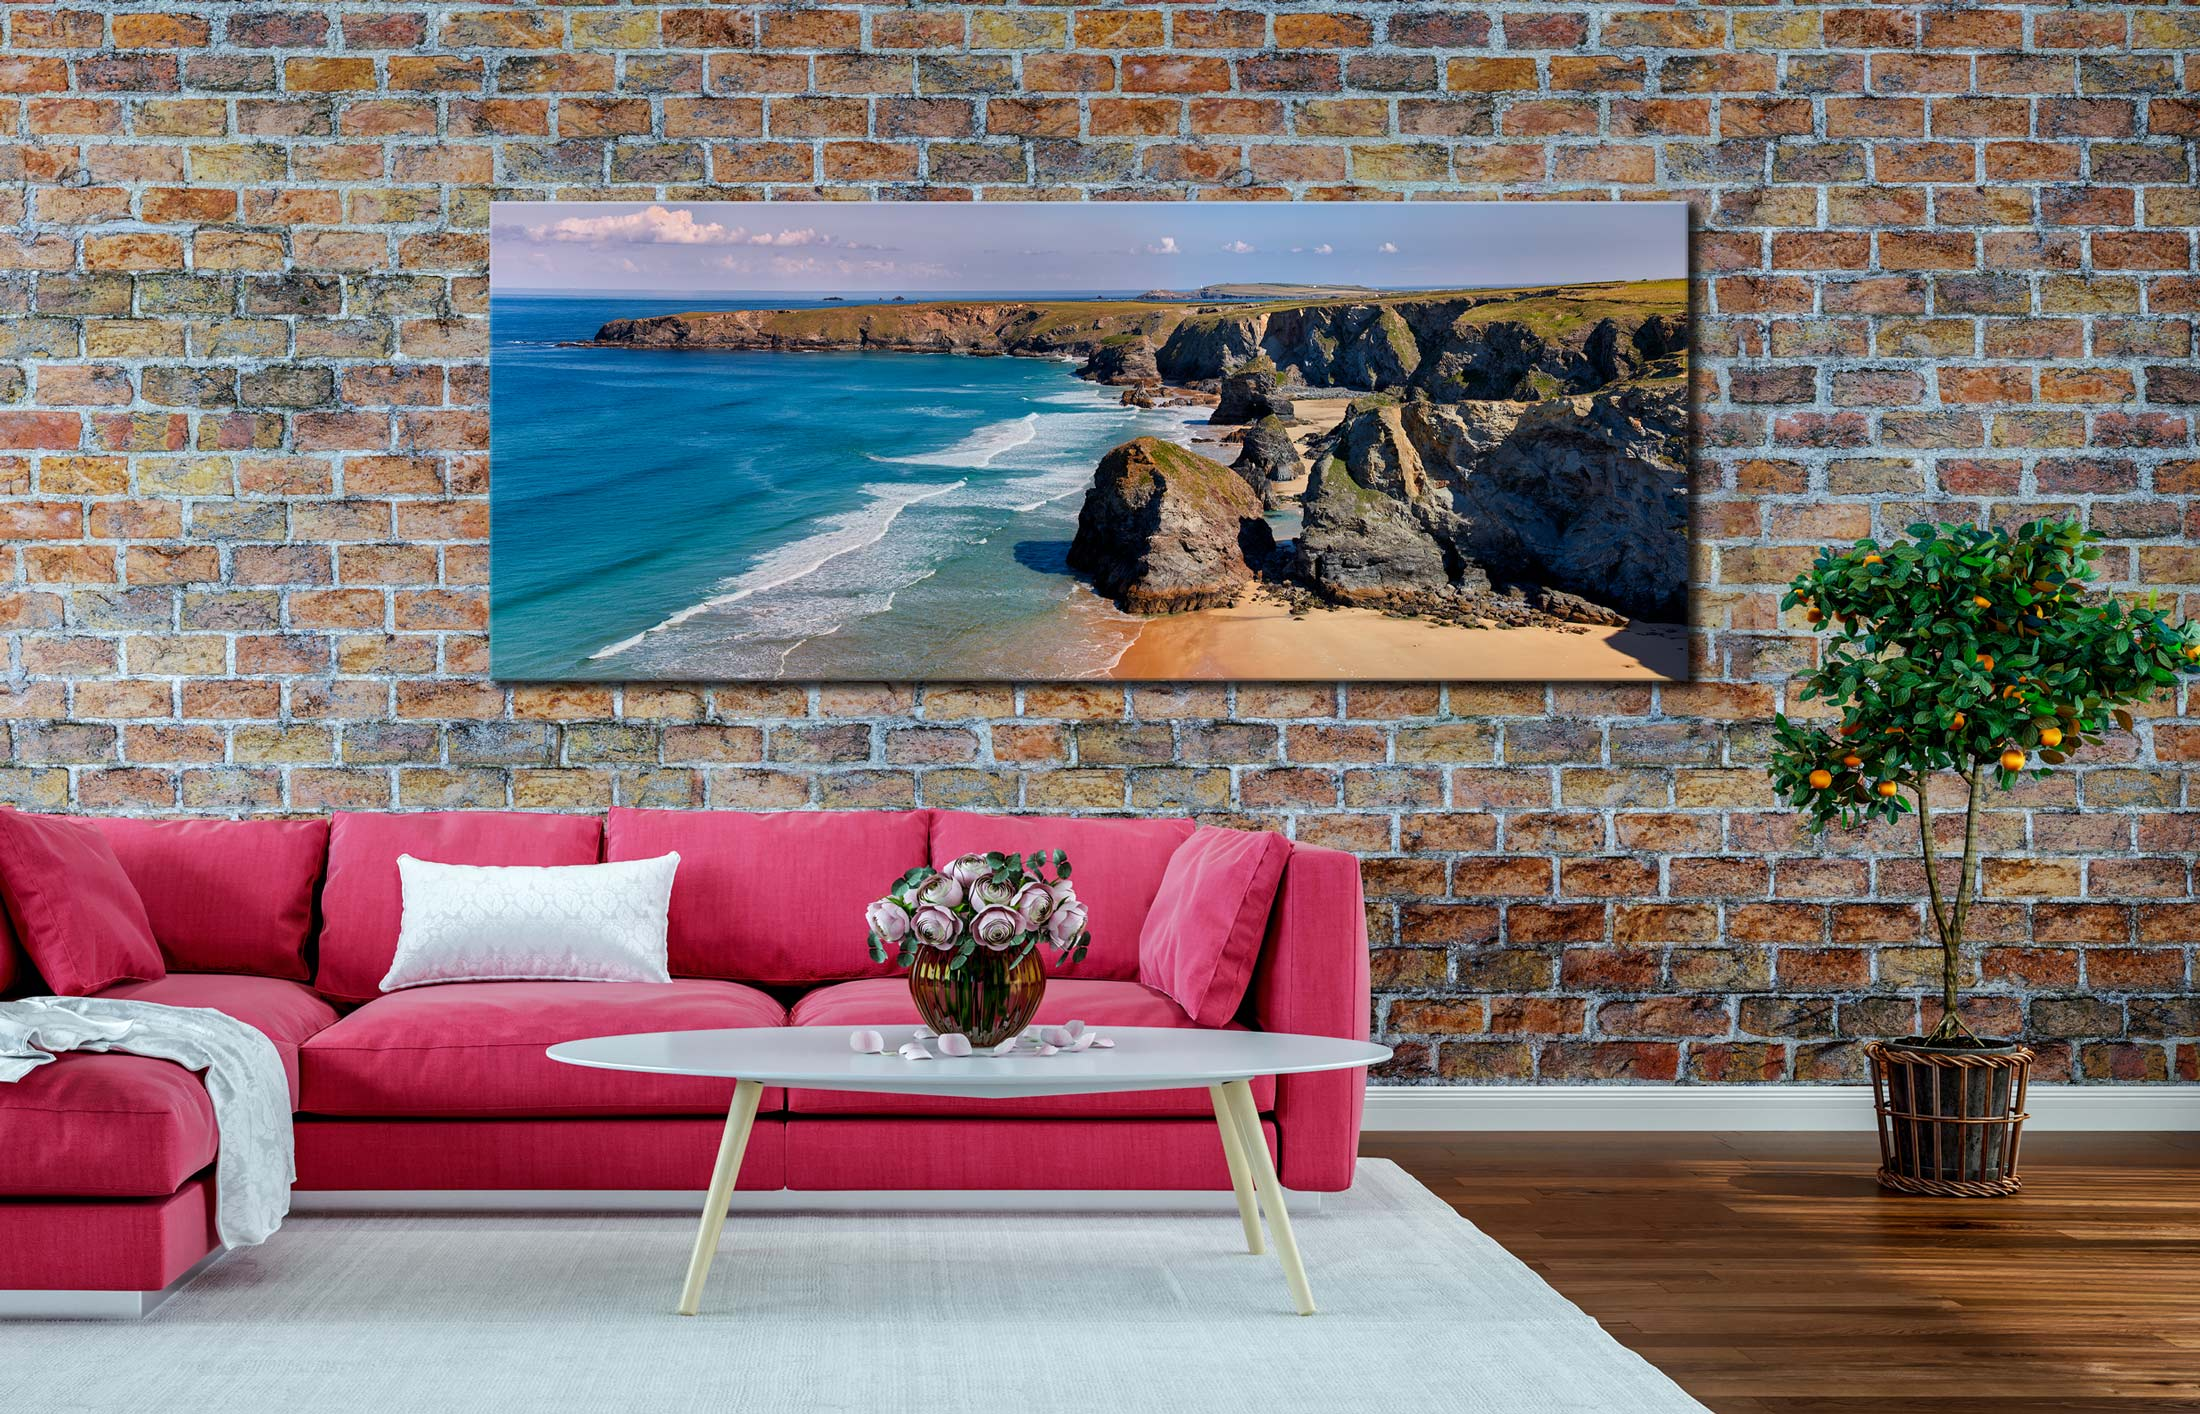 Bedruthan Rock Stacks Panorama - Canvas Print on Wall